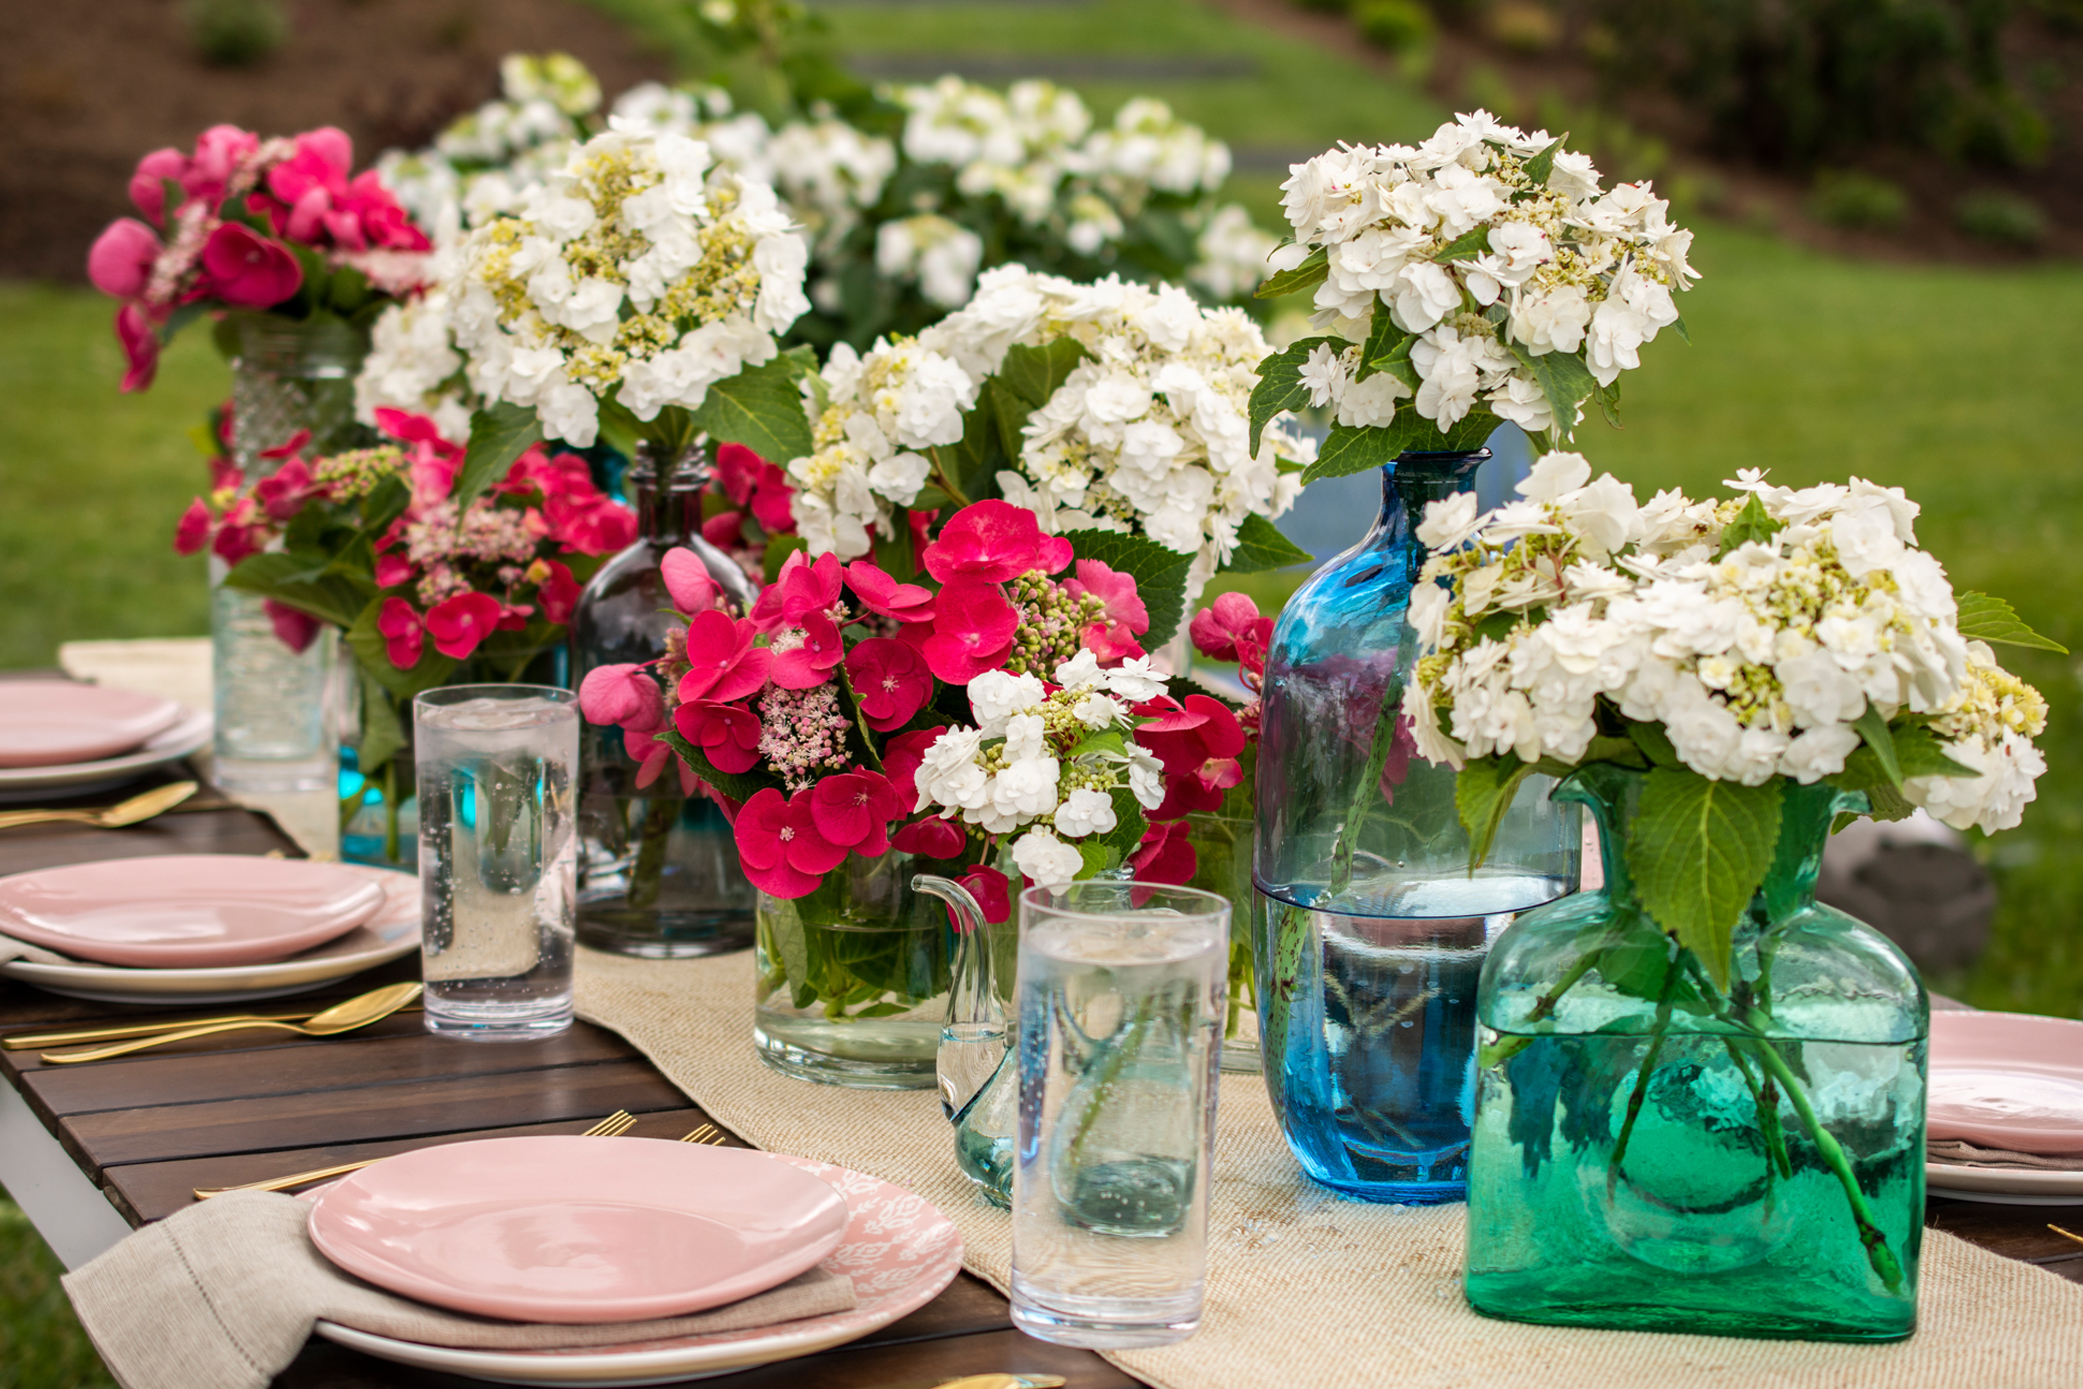 Hydrangea Cherry Explosion and Wedding Gown are beautiful in both vases and in the garden.